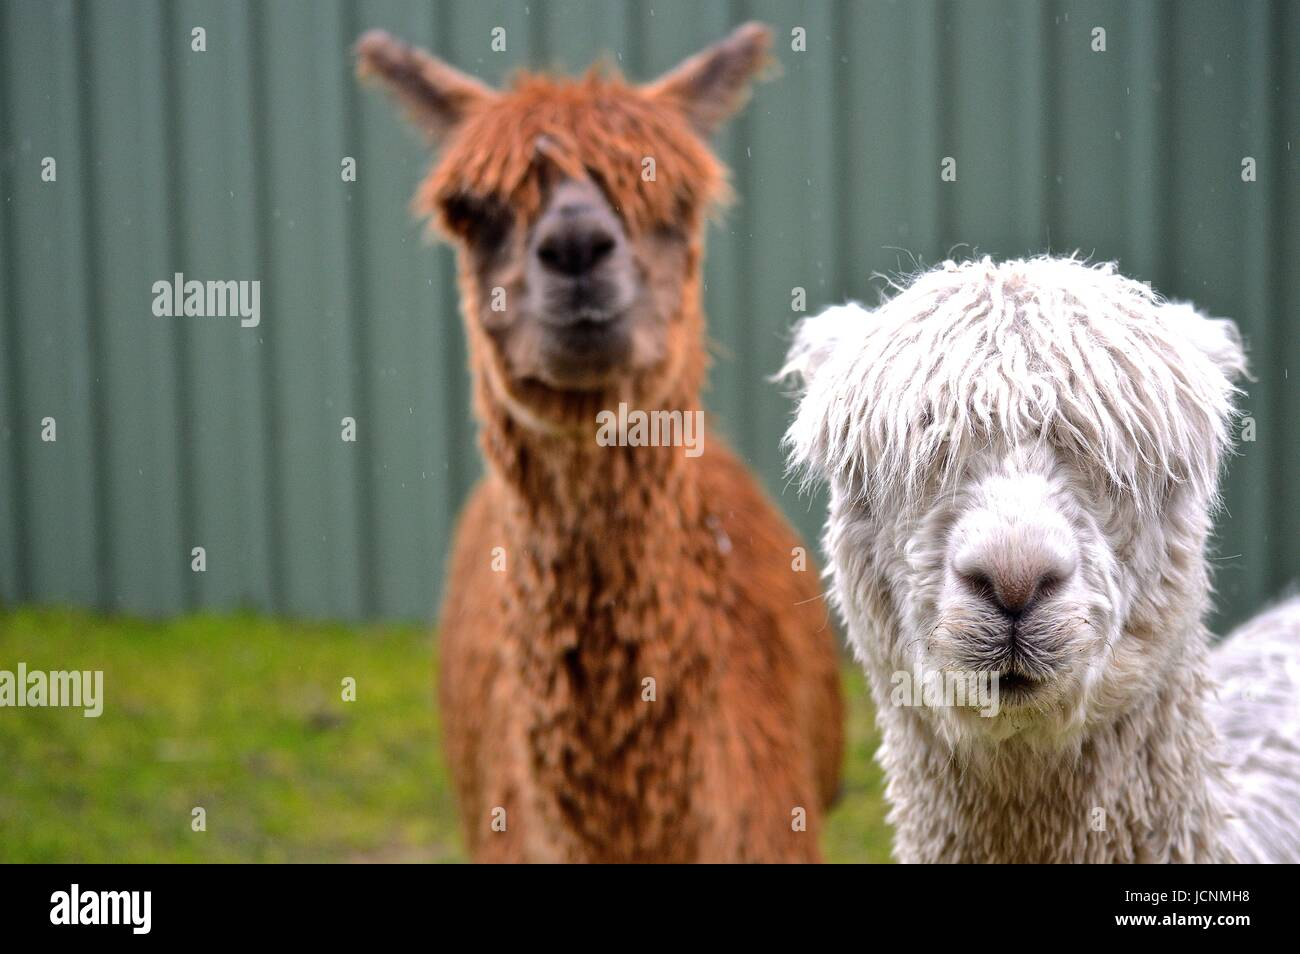 White and brown Suri Alpacas Stock Photo